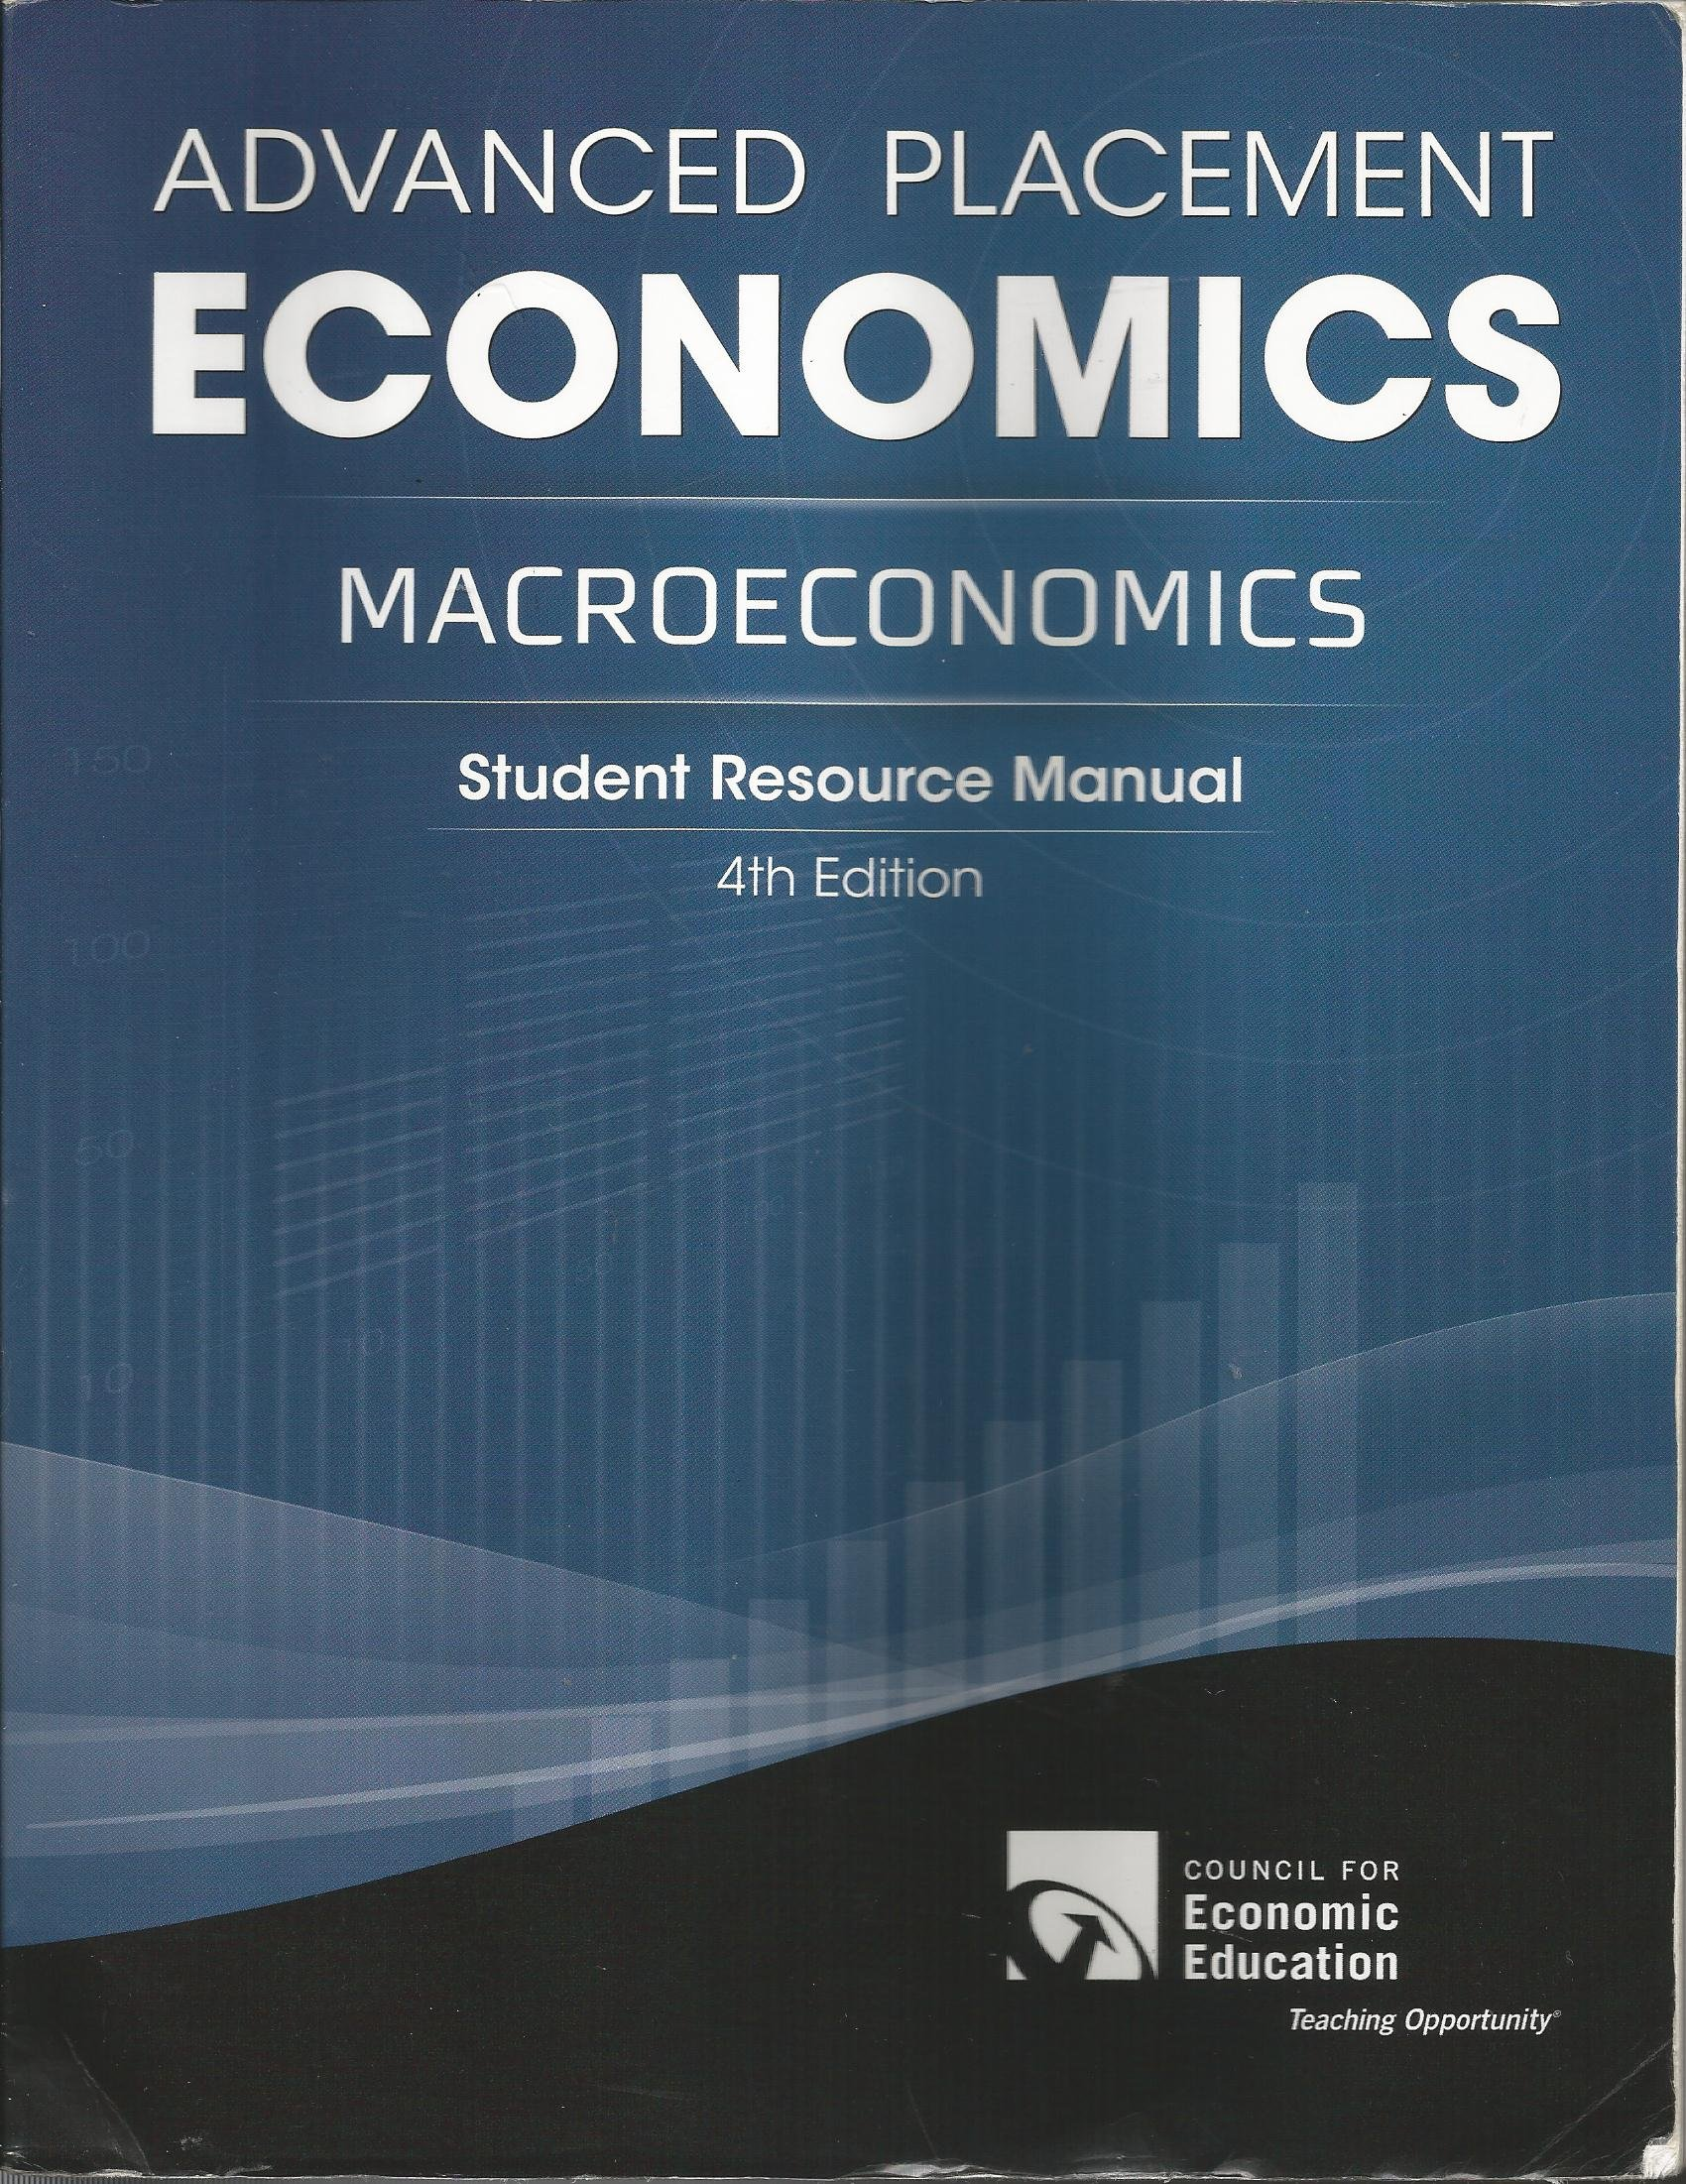 Advanced Placement Economics: Macroeconomics, Student Resource Manual, 4th  edition, 2014: Margaret A. Ray: 9781561836680: Amazon.com: Books